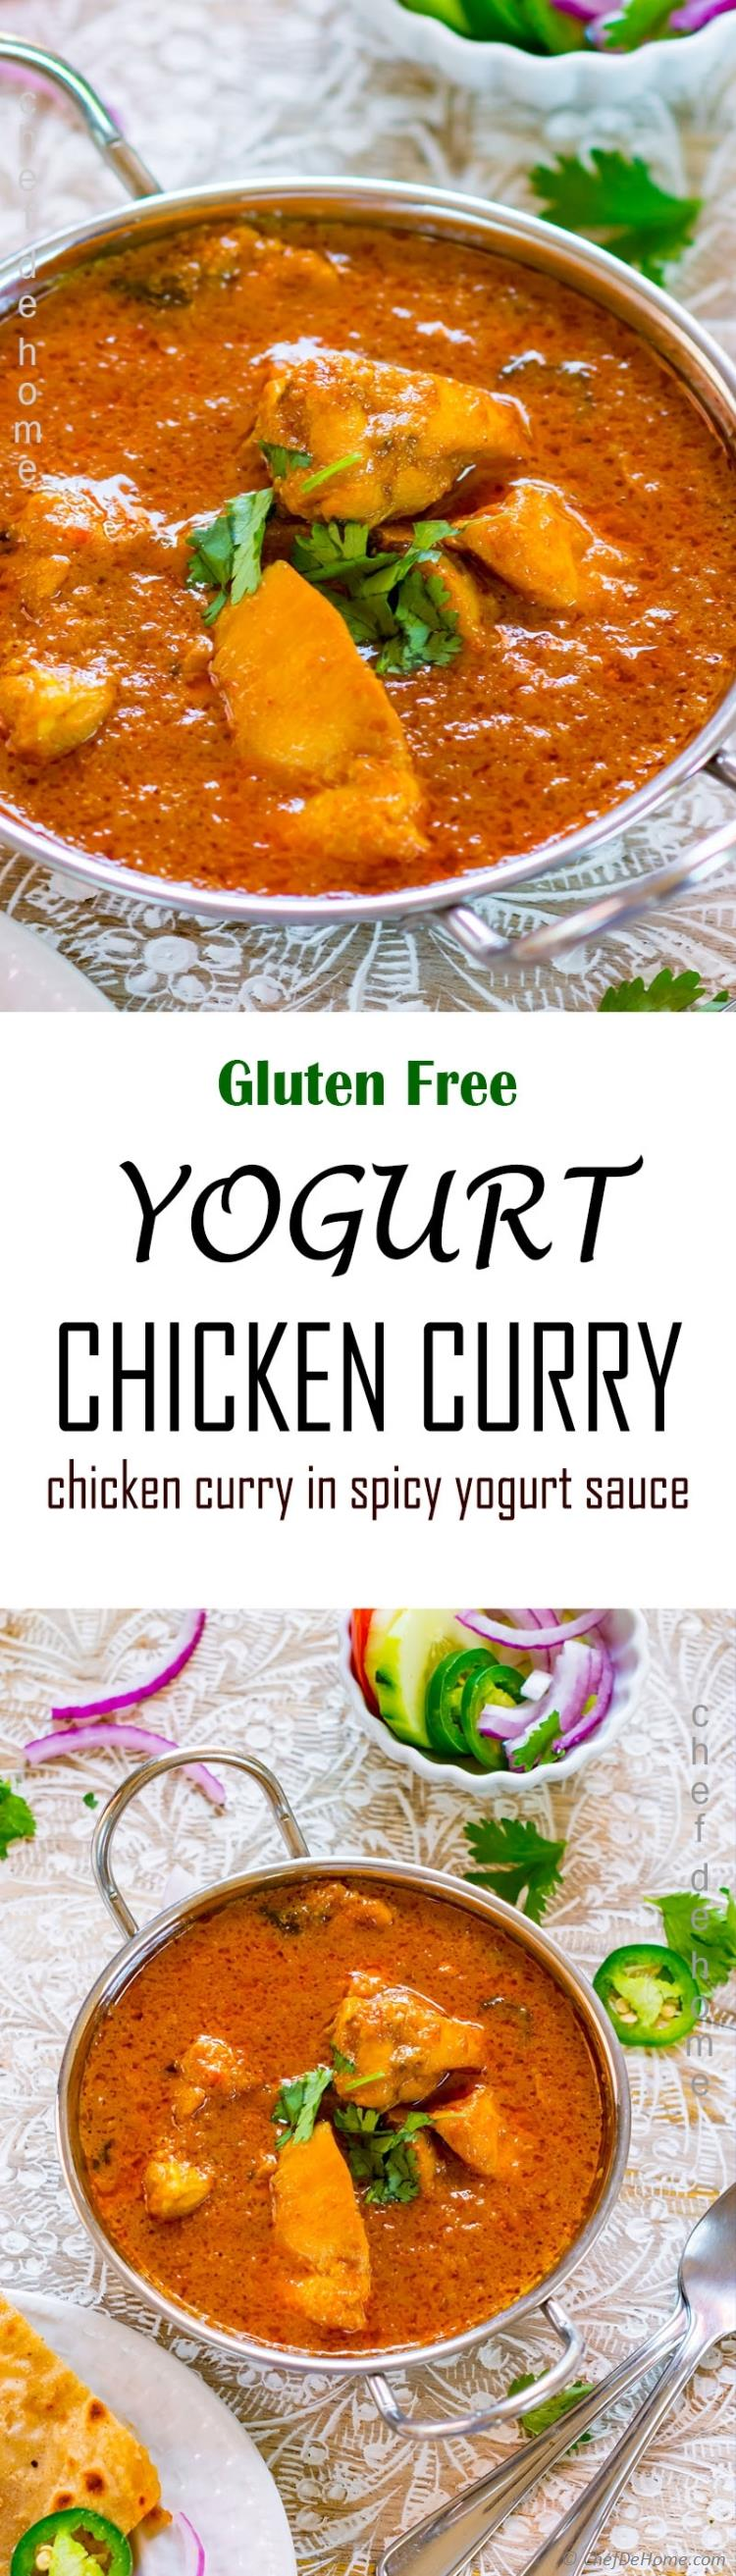 Easy Indian Chicken Yogurt Curry